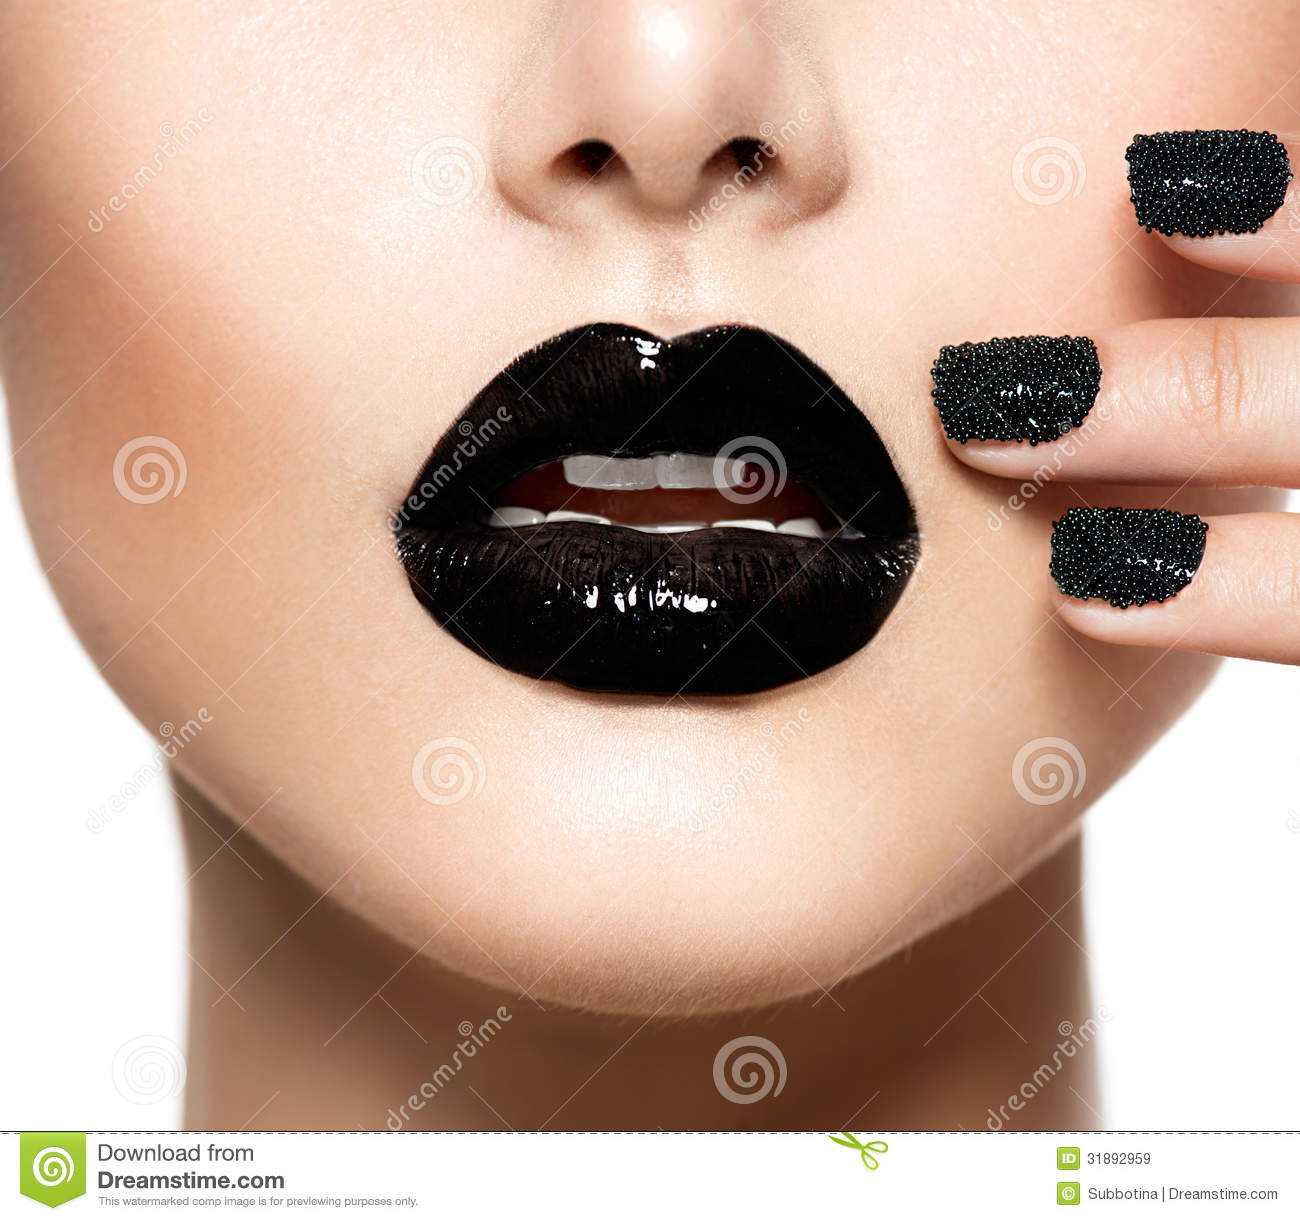 black caviar manicure and black lips stock image image of facial cosmetic 31892959. Black Bedroom Furniture Sets. Home Design Ideas